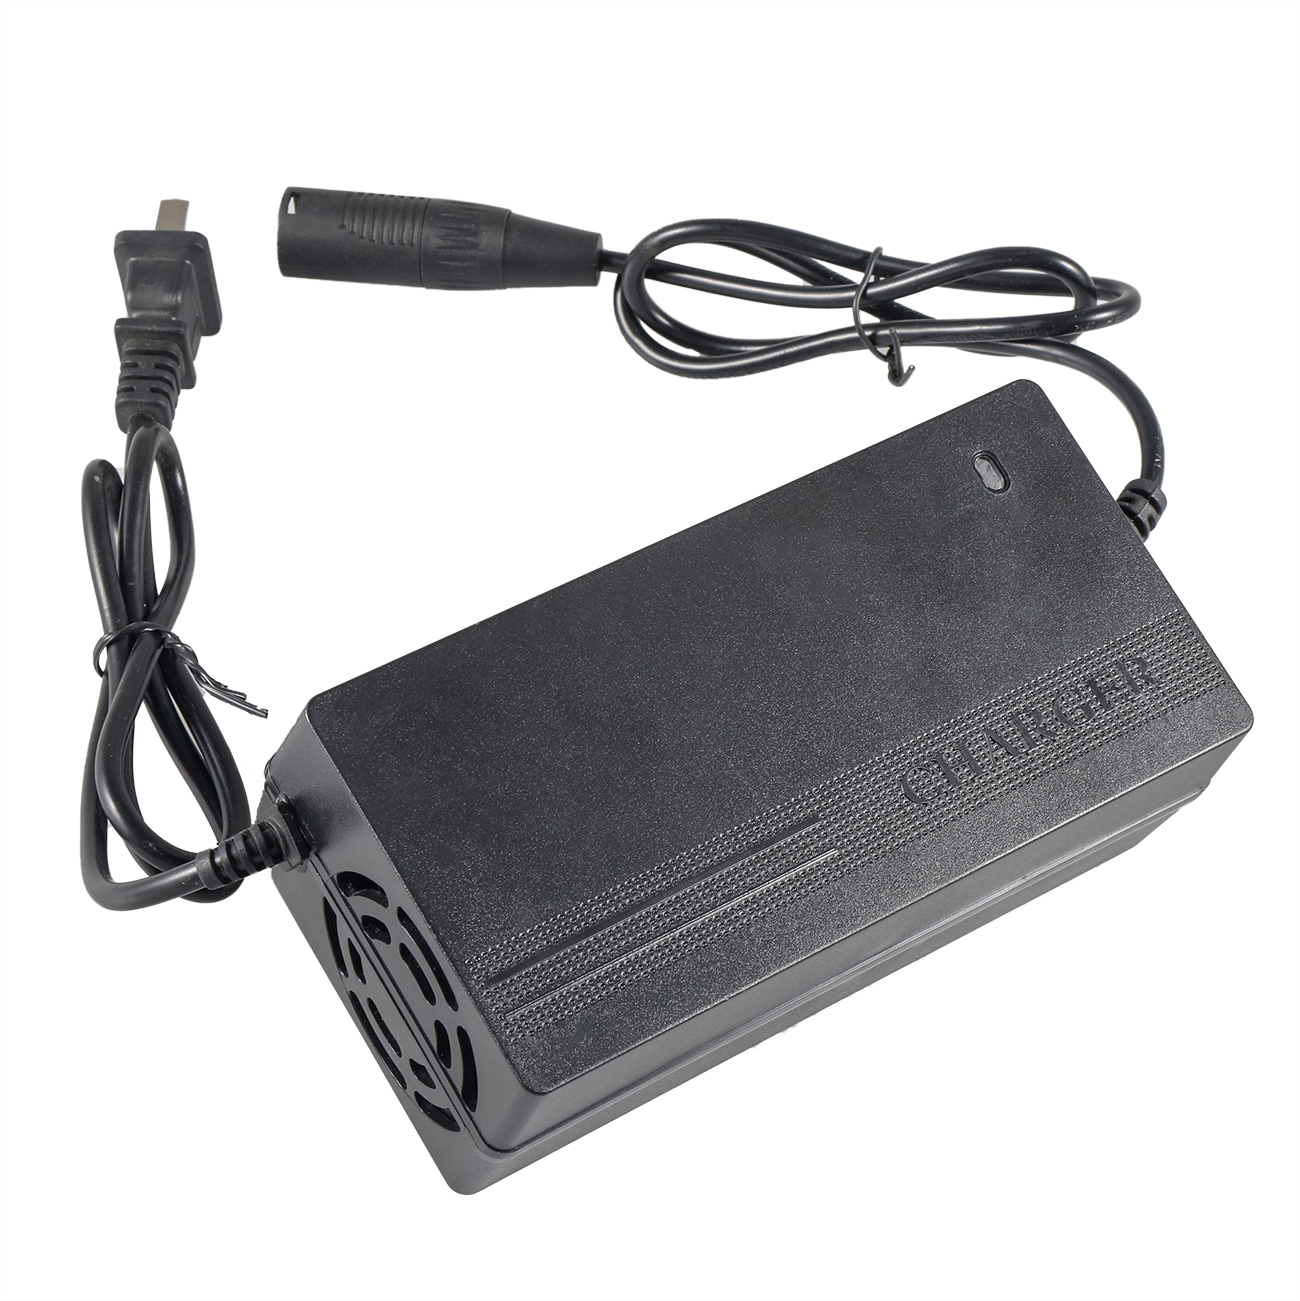 36 Volt Electric Scooter Battery Charger For Razor MX500 MX650 Dirt Rocket Bike